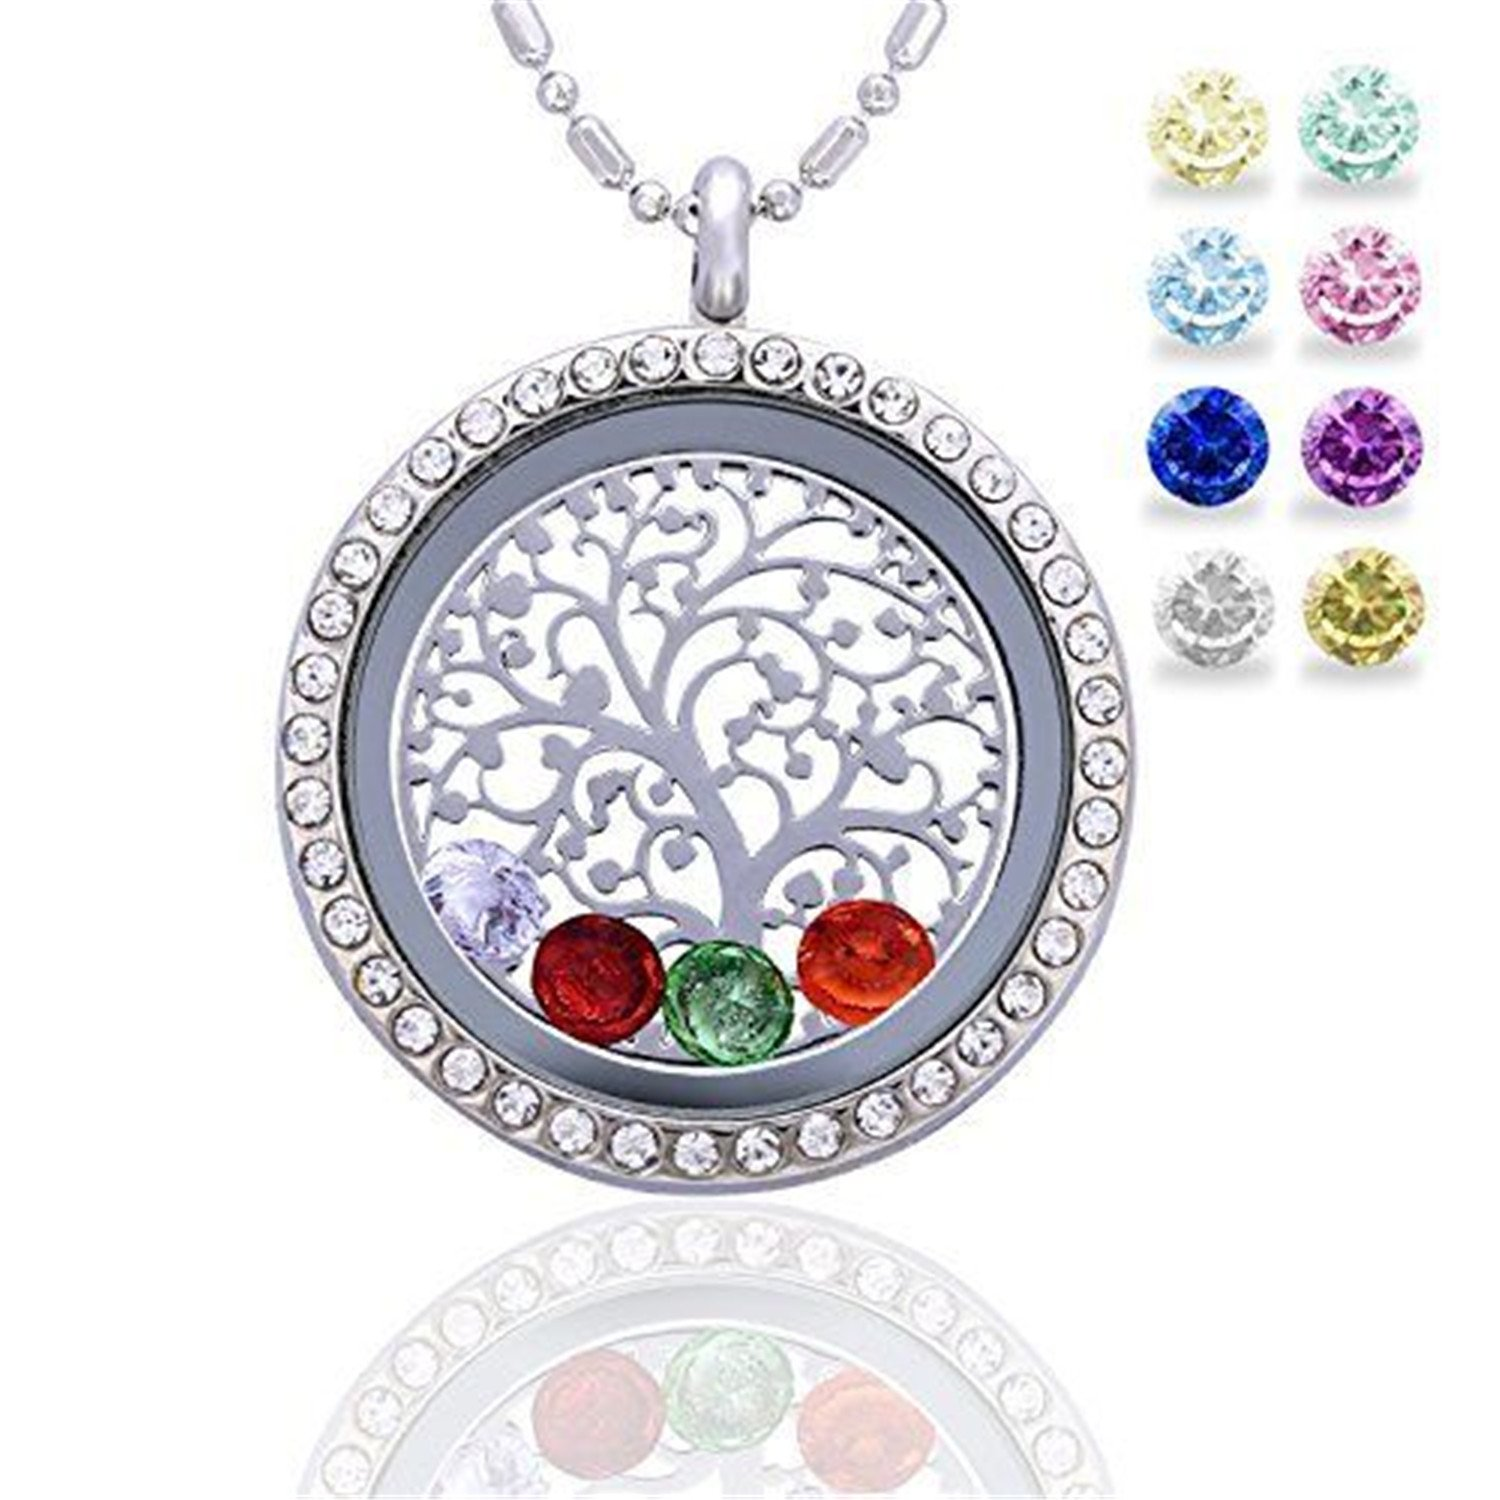 GraceAngie 30mm Round Magnetic Closure Floating Living Memory Lockets Pendant Necklace